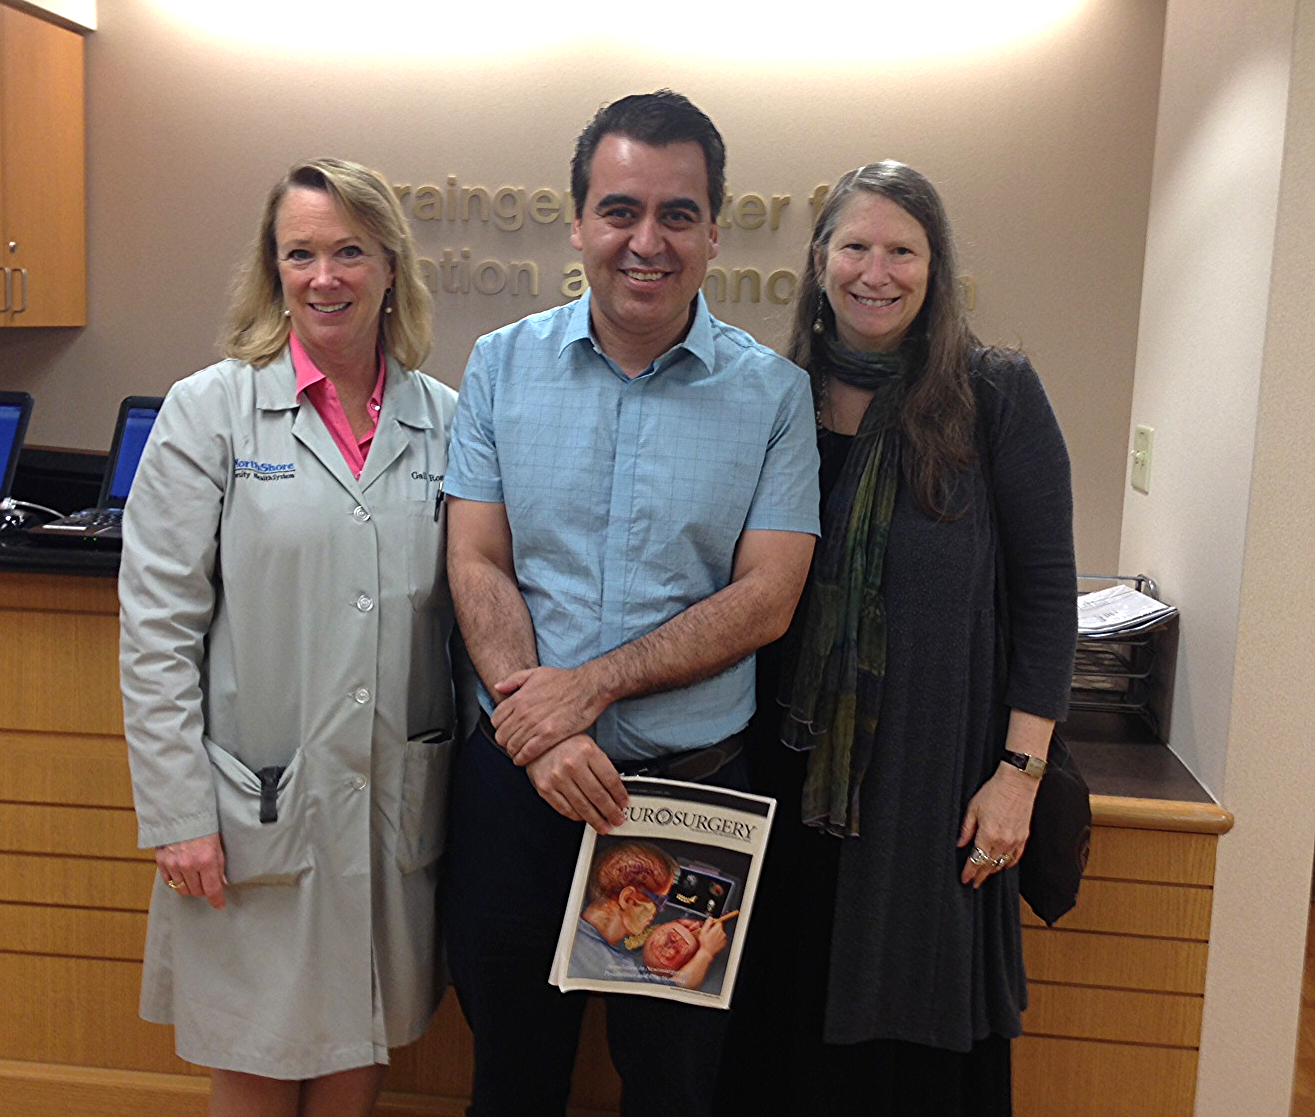 Gail Rosseau, MD, Gueider Salas, MD, and Roberta Glick, MD at Evanston Hospital during Salas' 2014 Solidarity Visit.